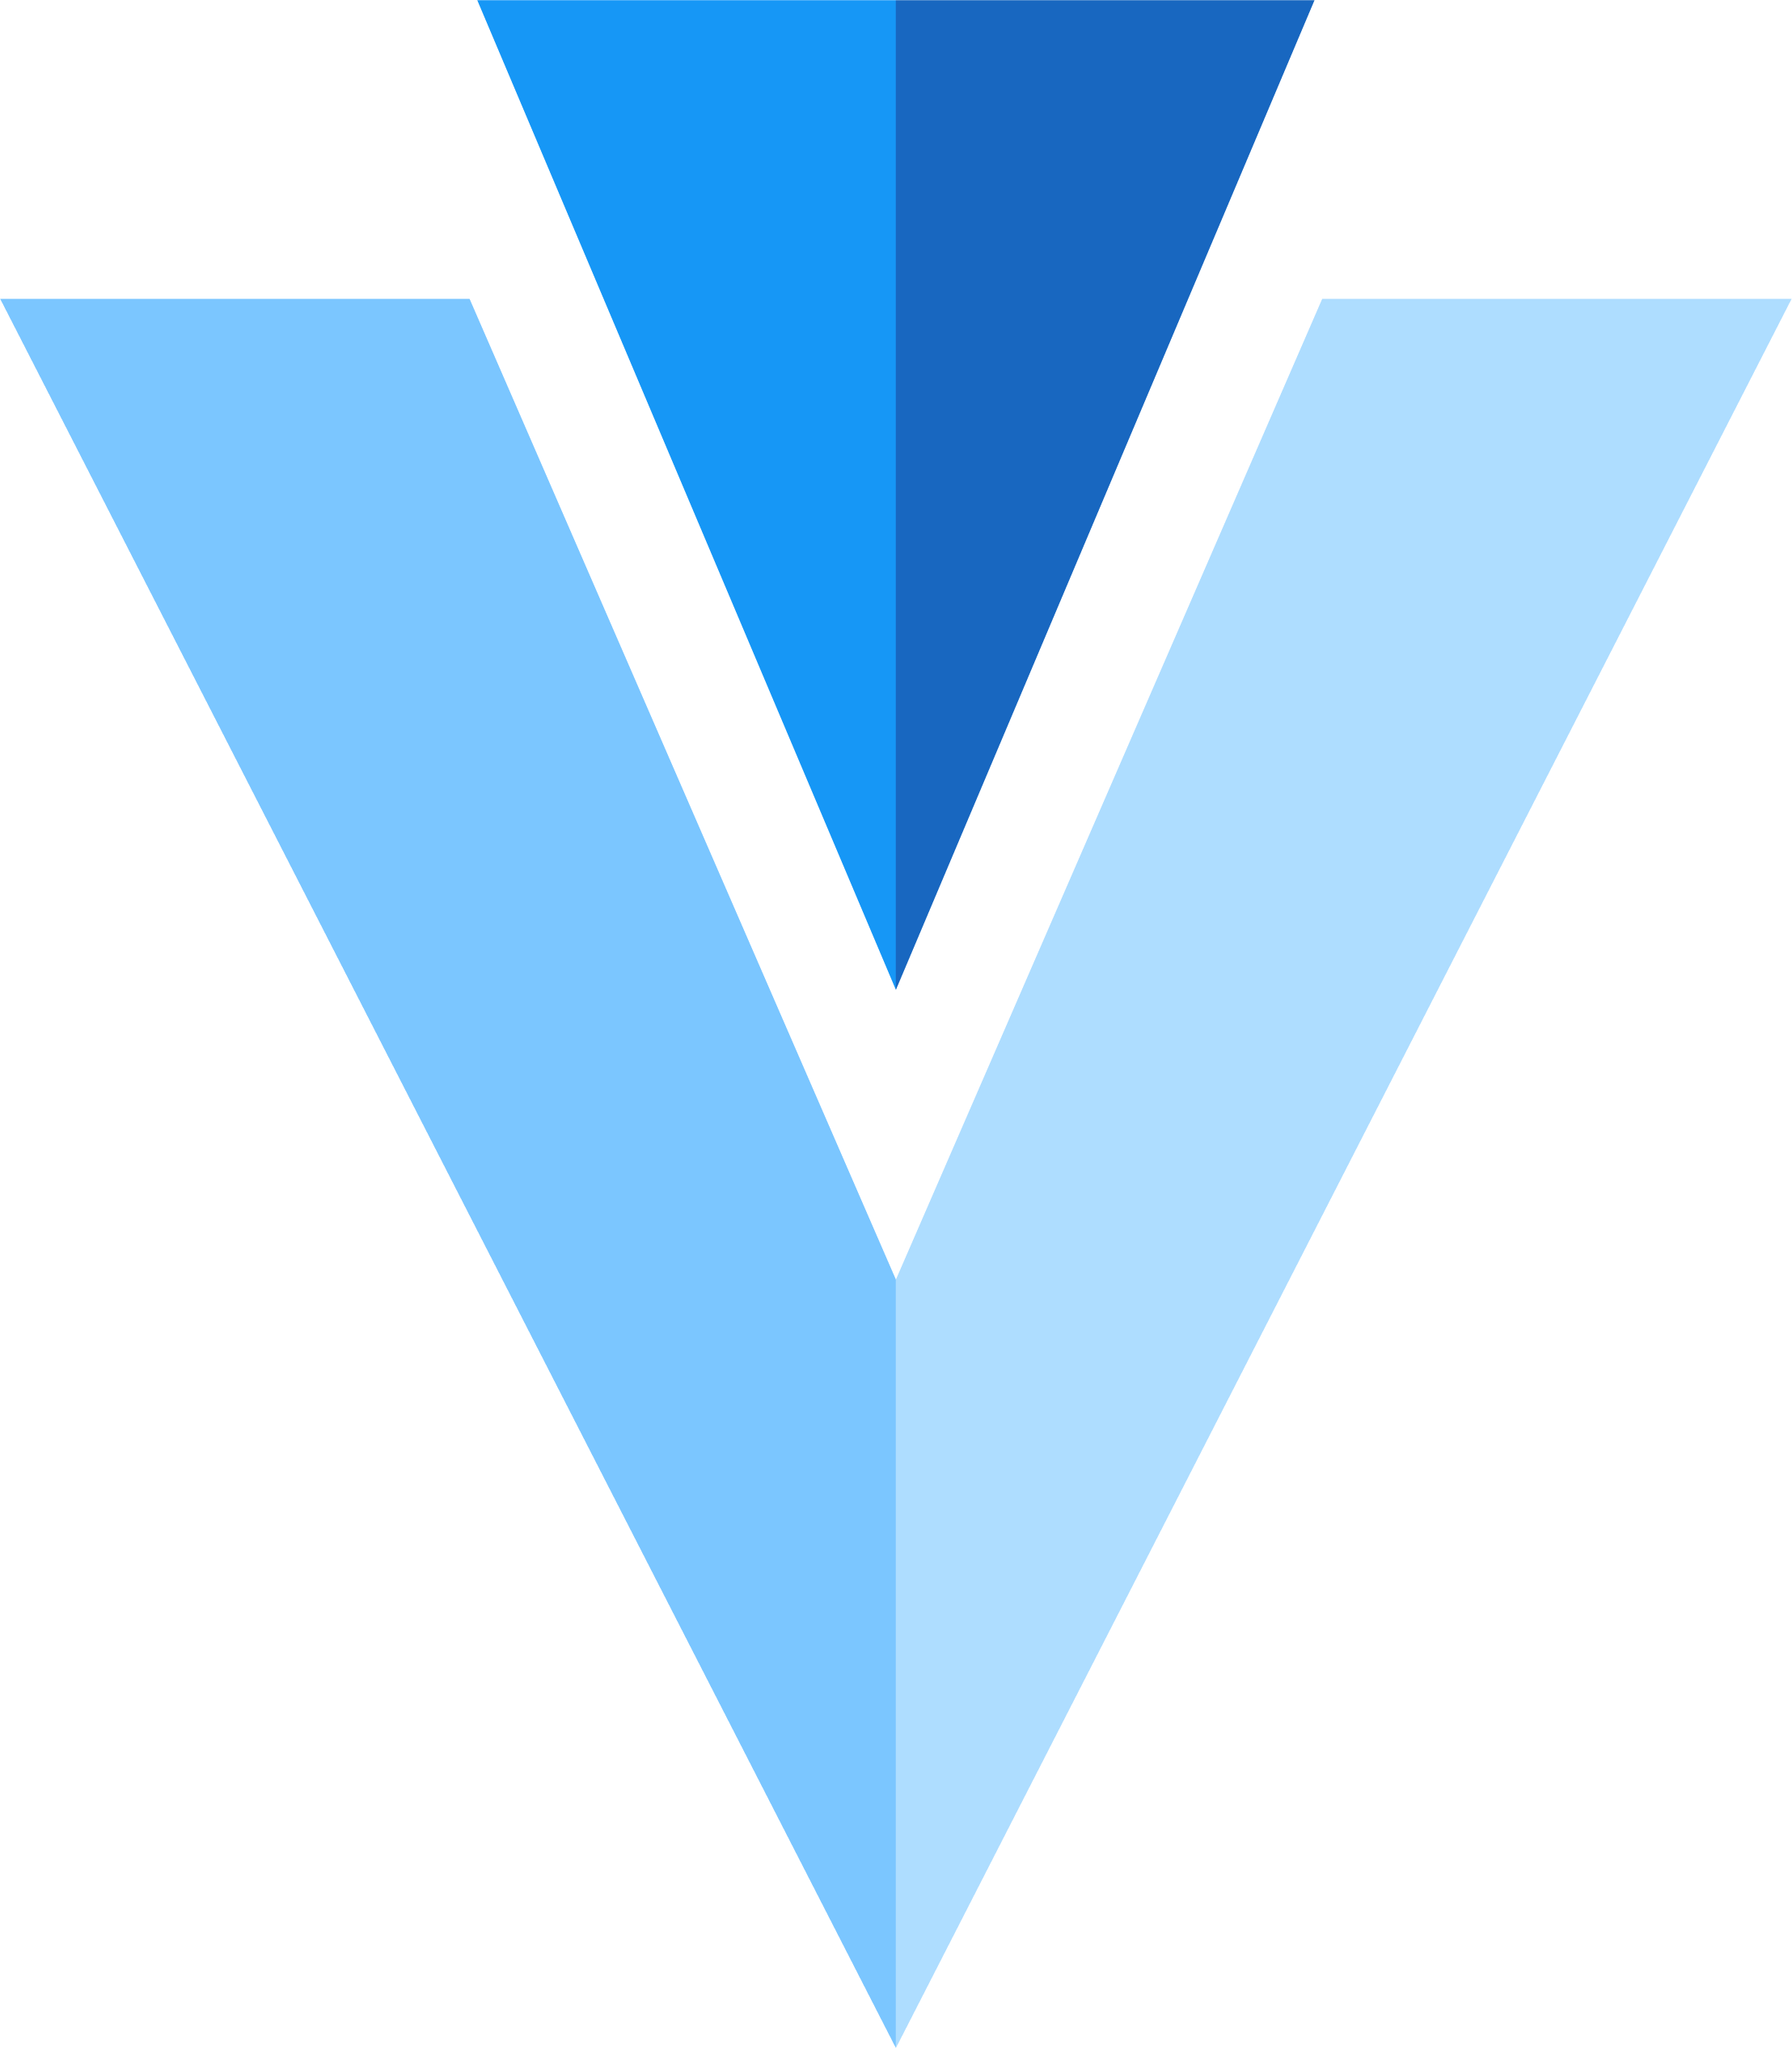 Logo of Vuetify LLC